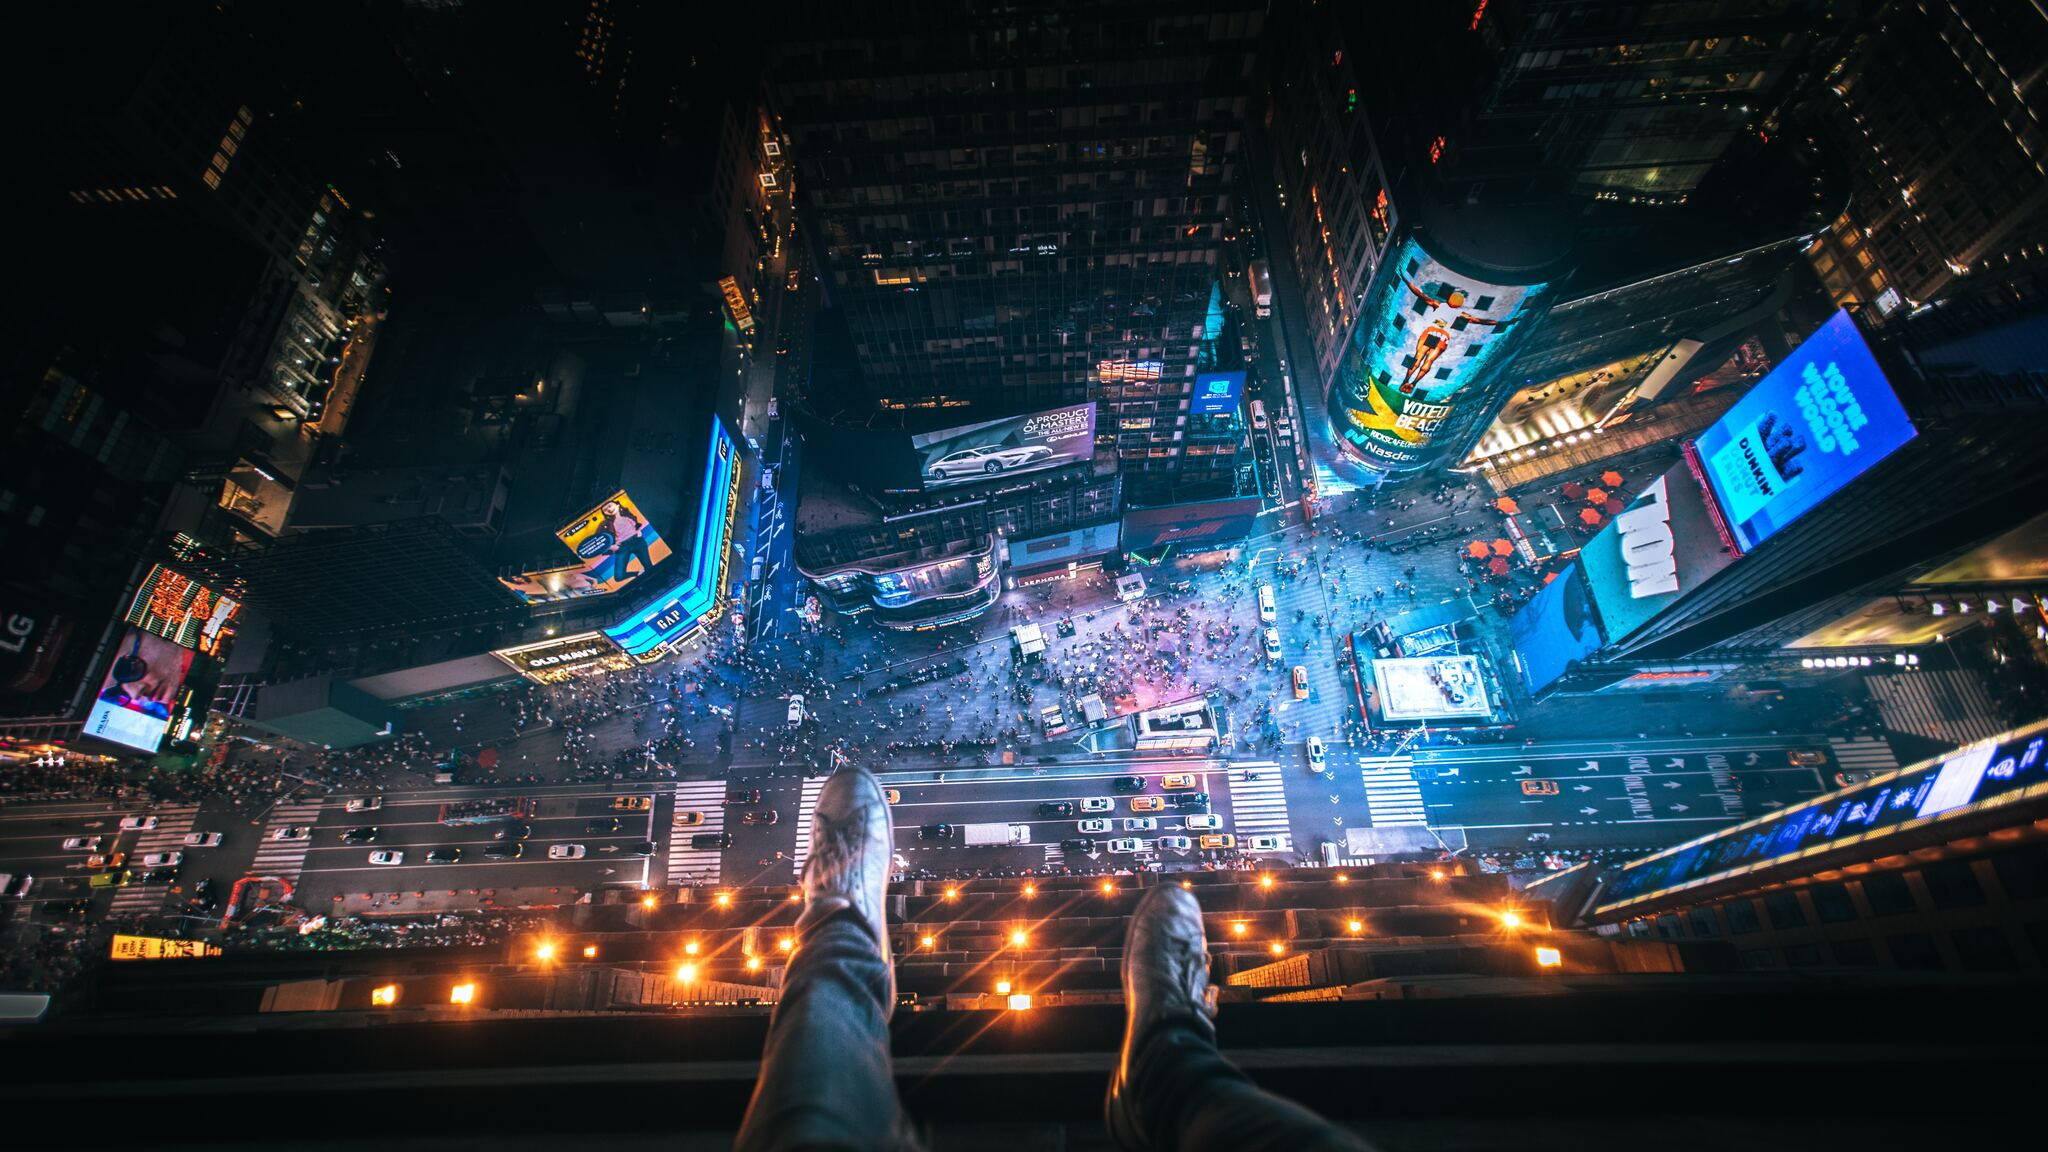 2048x1152 Legs Hanging Aerial View New York City 5k 2048x1152 Resolution Hd 4k Wallpapers Images Backgrounds Photos And Pictures